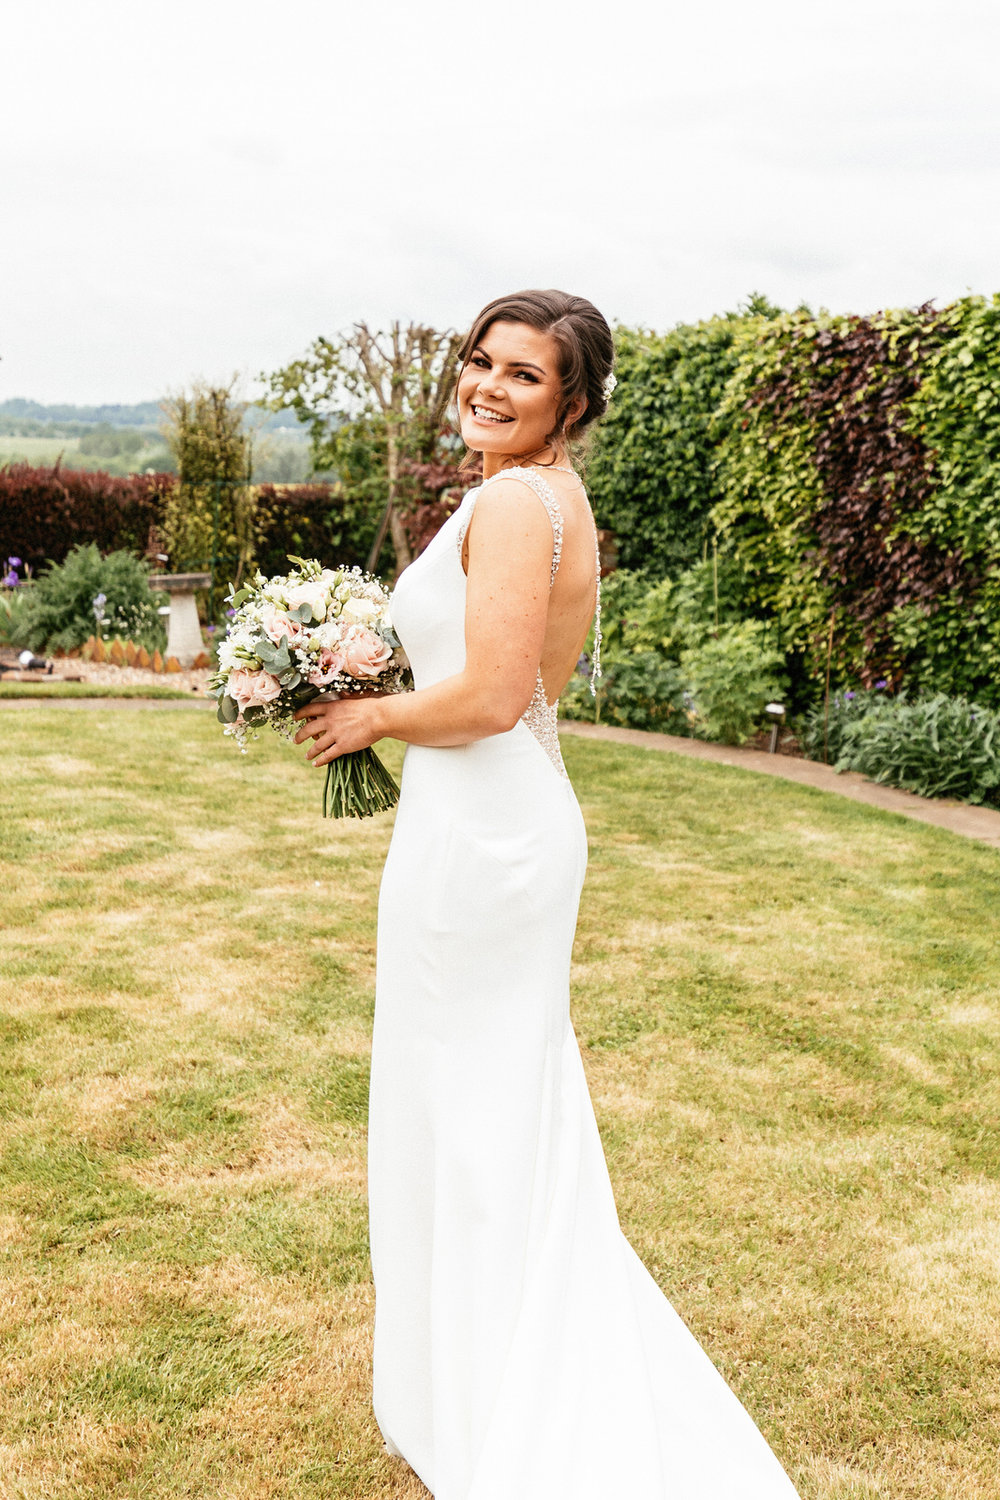 Clophill-Centre-Wedding-Photographer-019.jpg